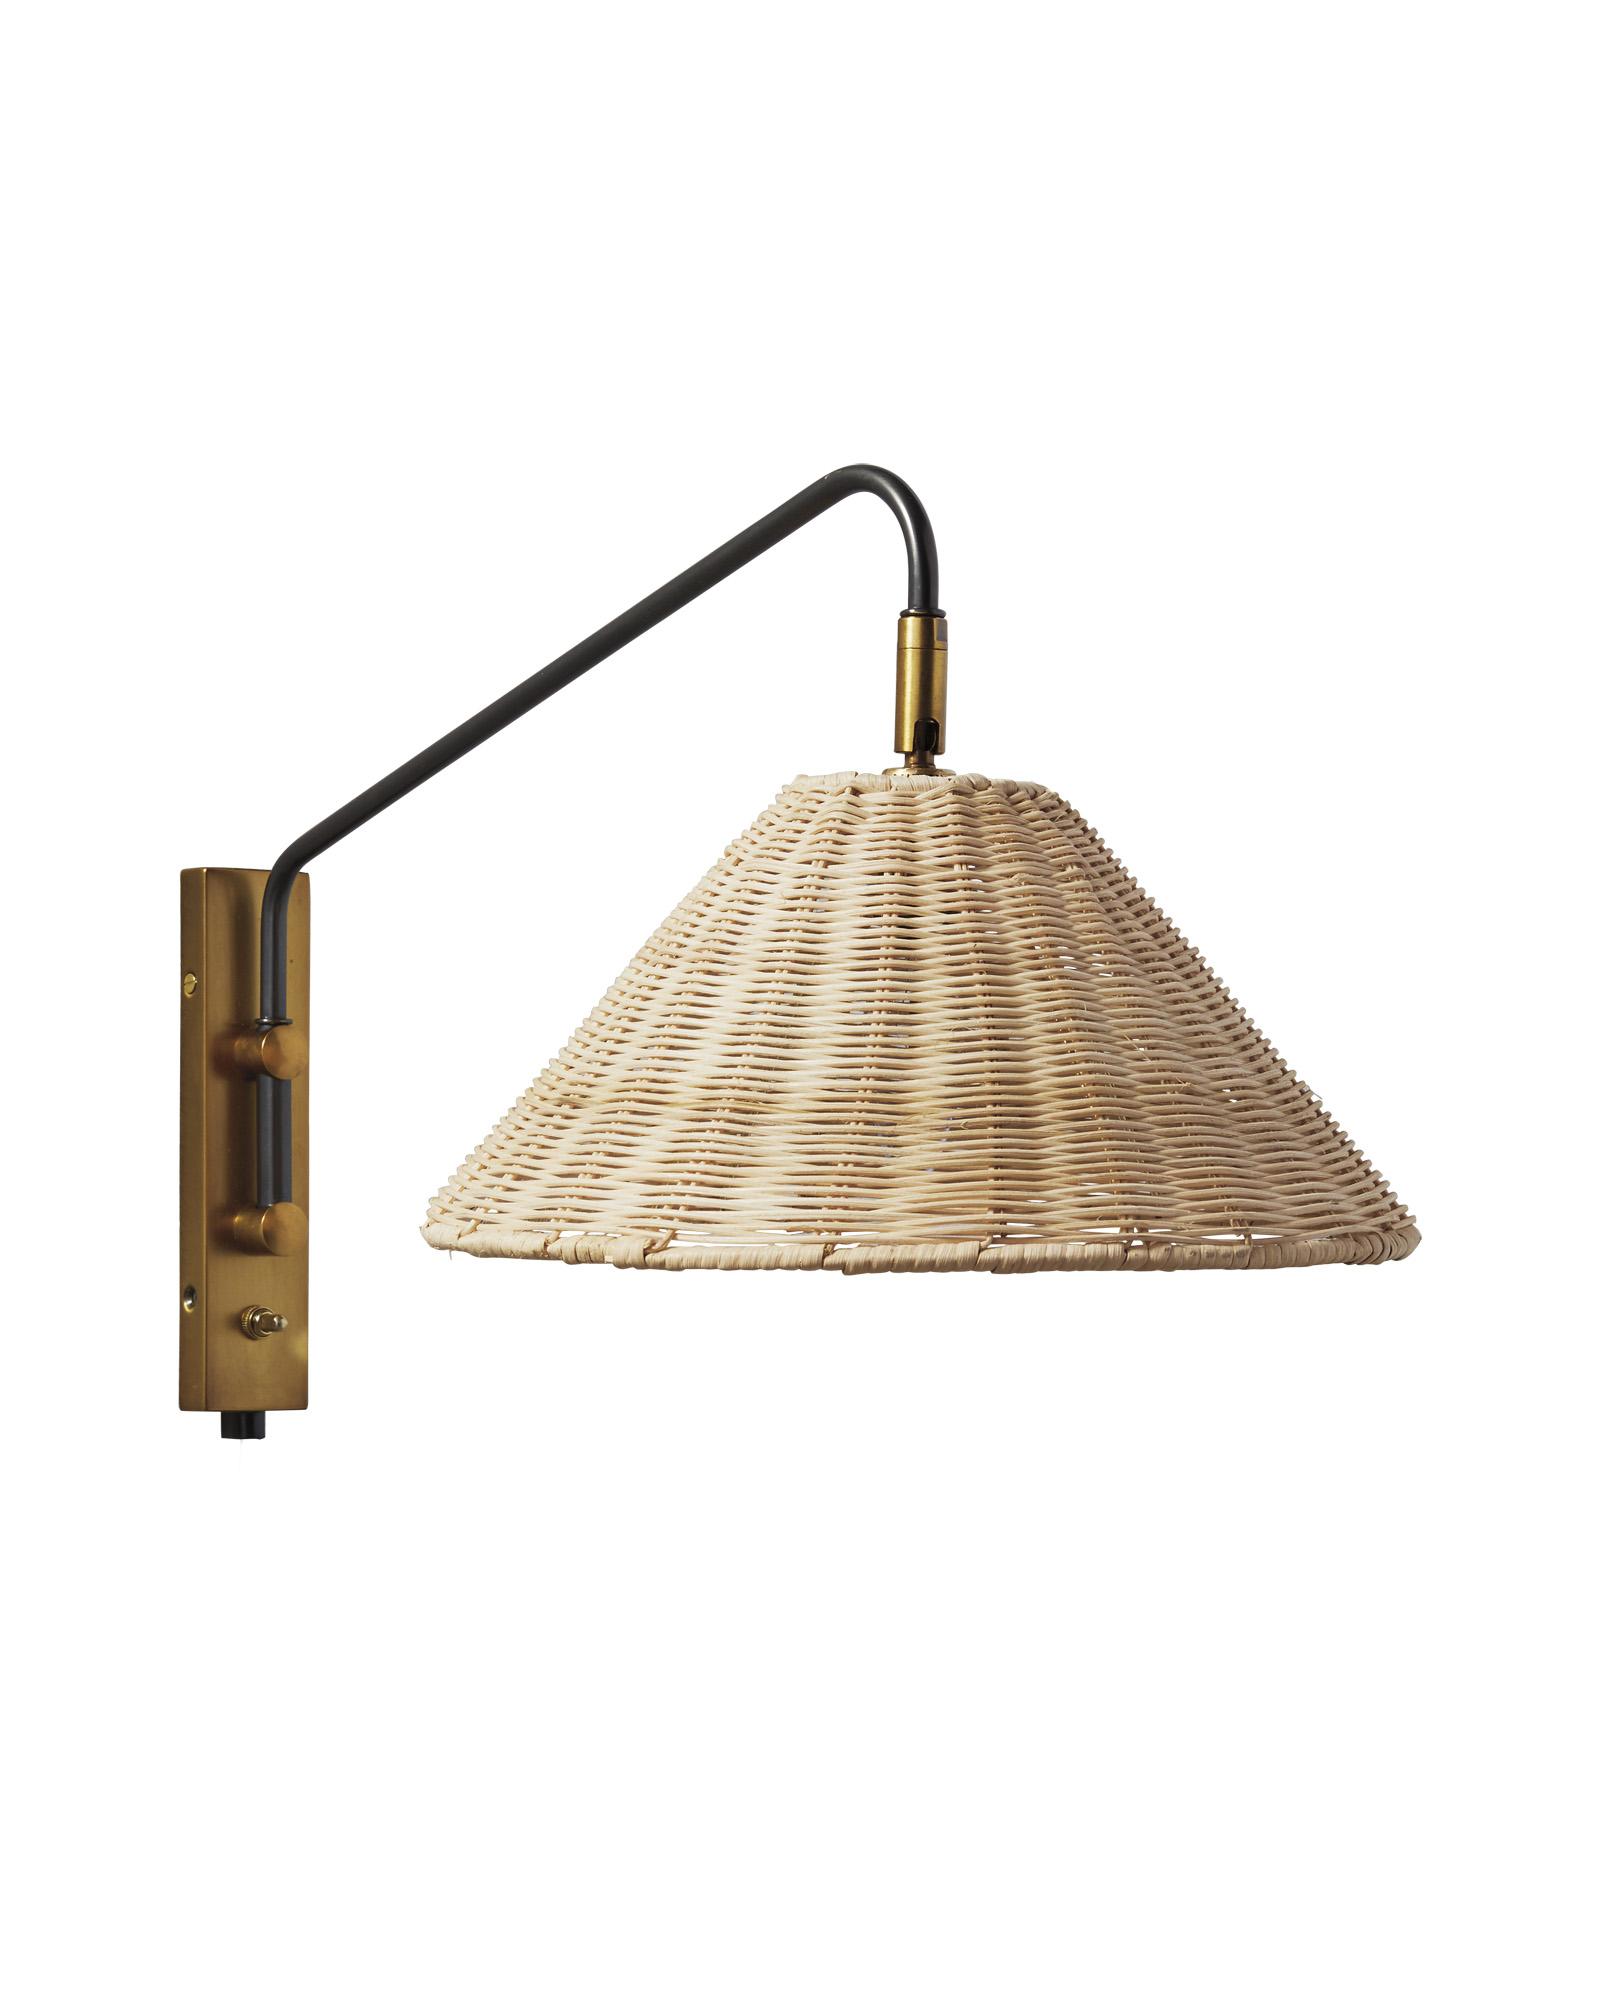 Lighting_Flynn_Wall_Sconce_Single_Wicker_MV_Crop_BASE.jpg